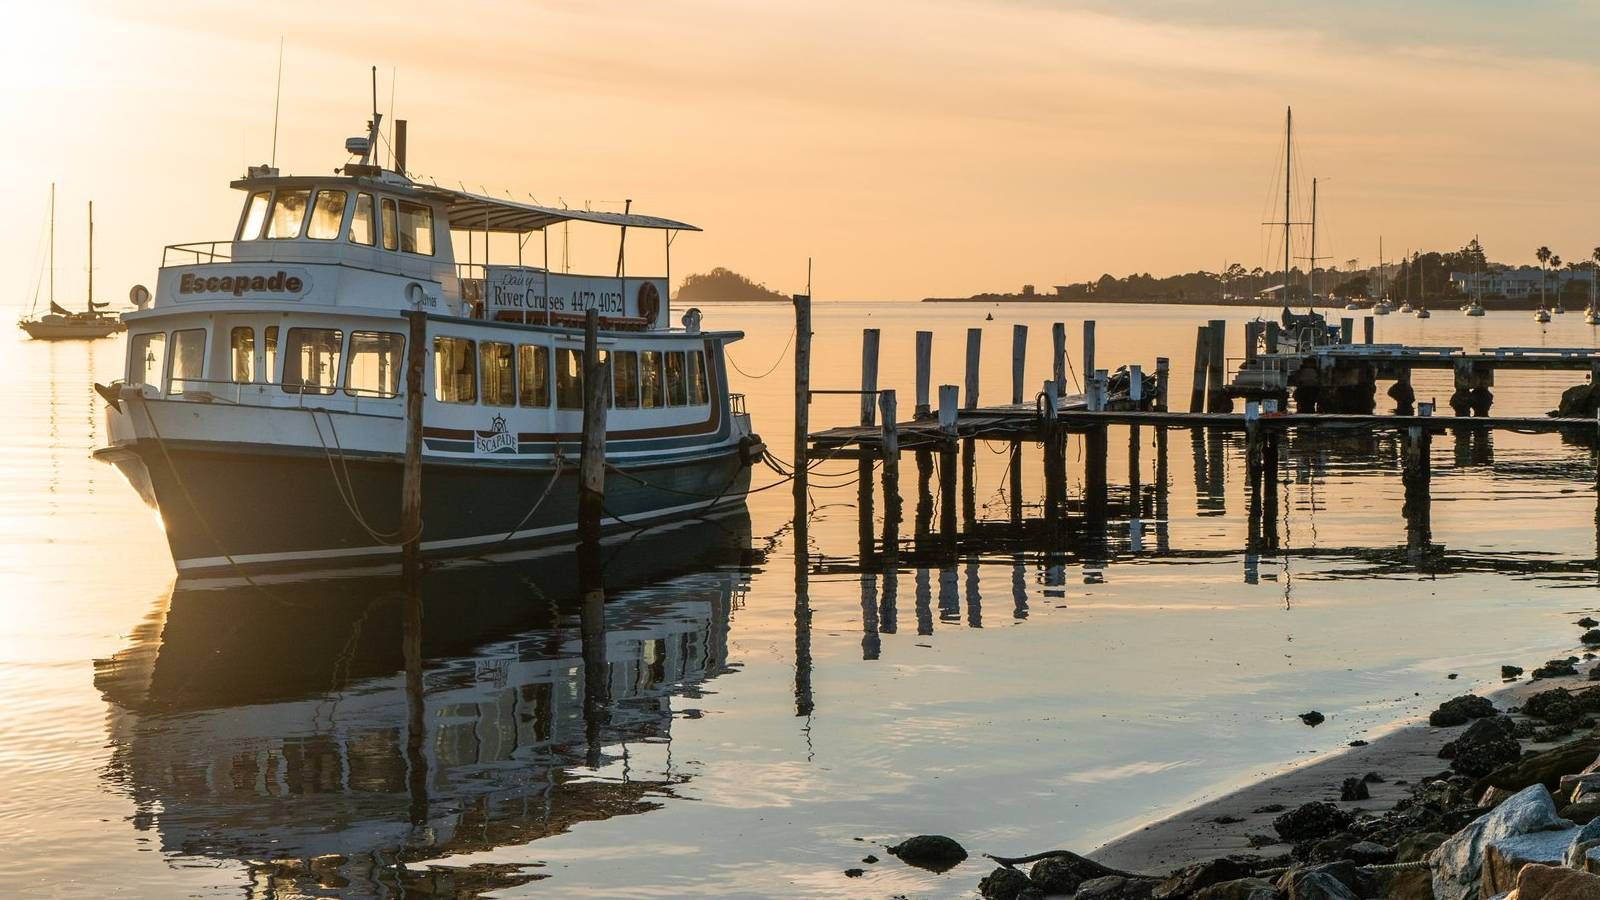 Cruise boat docked at the wharf with sunset in the background banner image